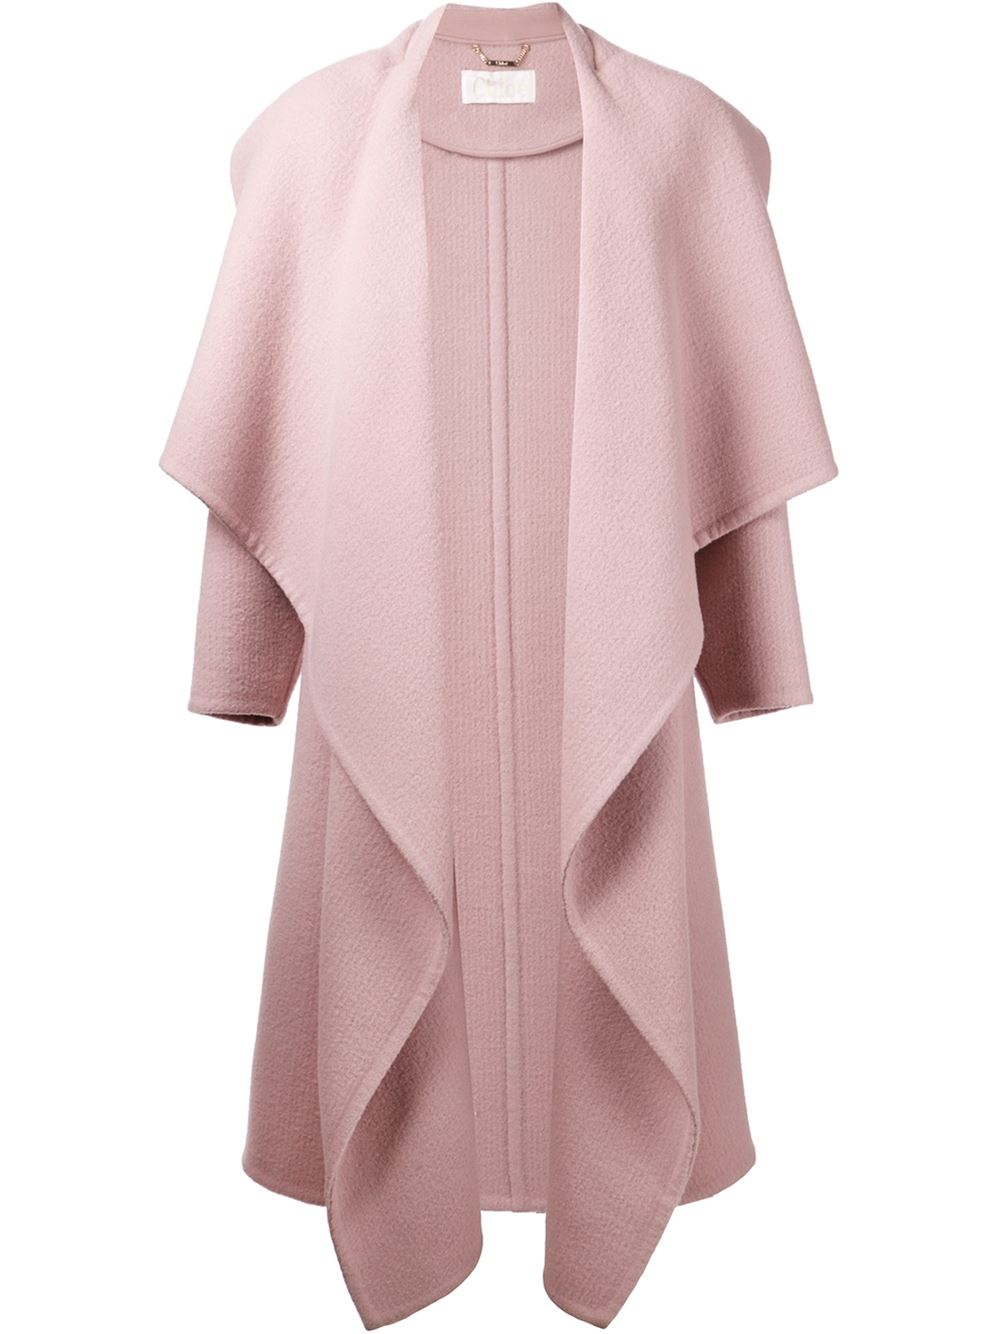 Chloé Draped Front Coat in Pink | Lyst